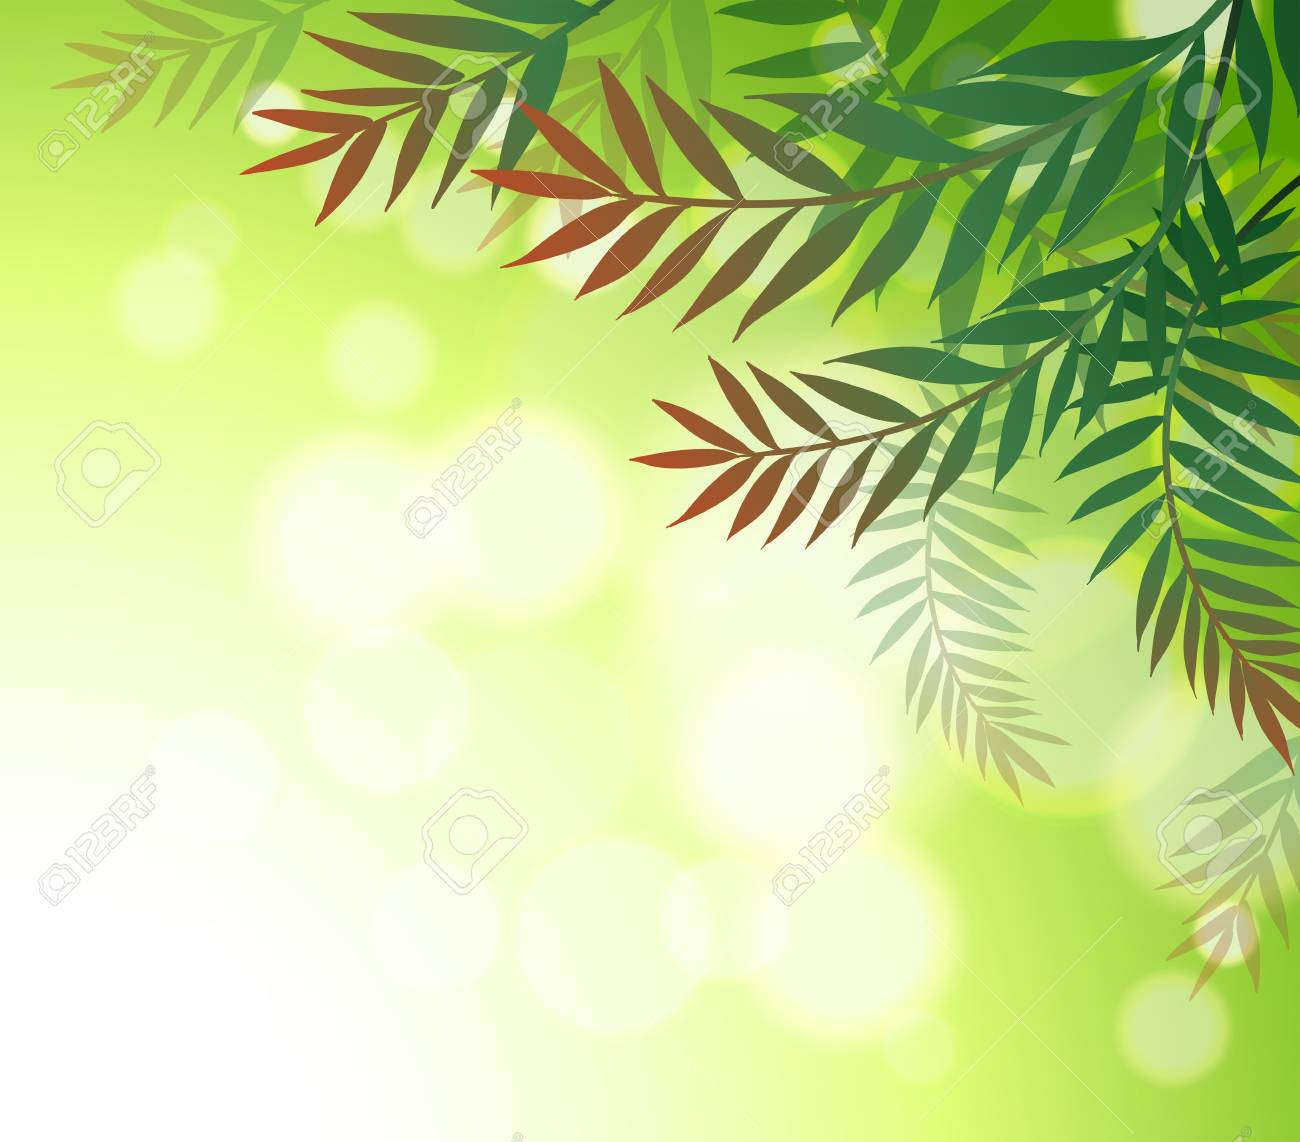 Illustration of a green stationery with leaves Stock Vector - 18824991